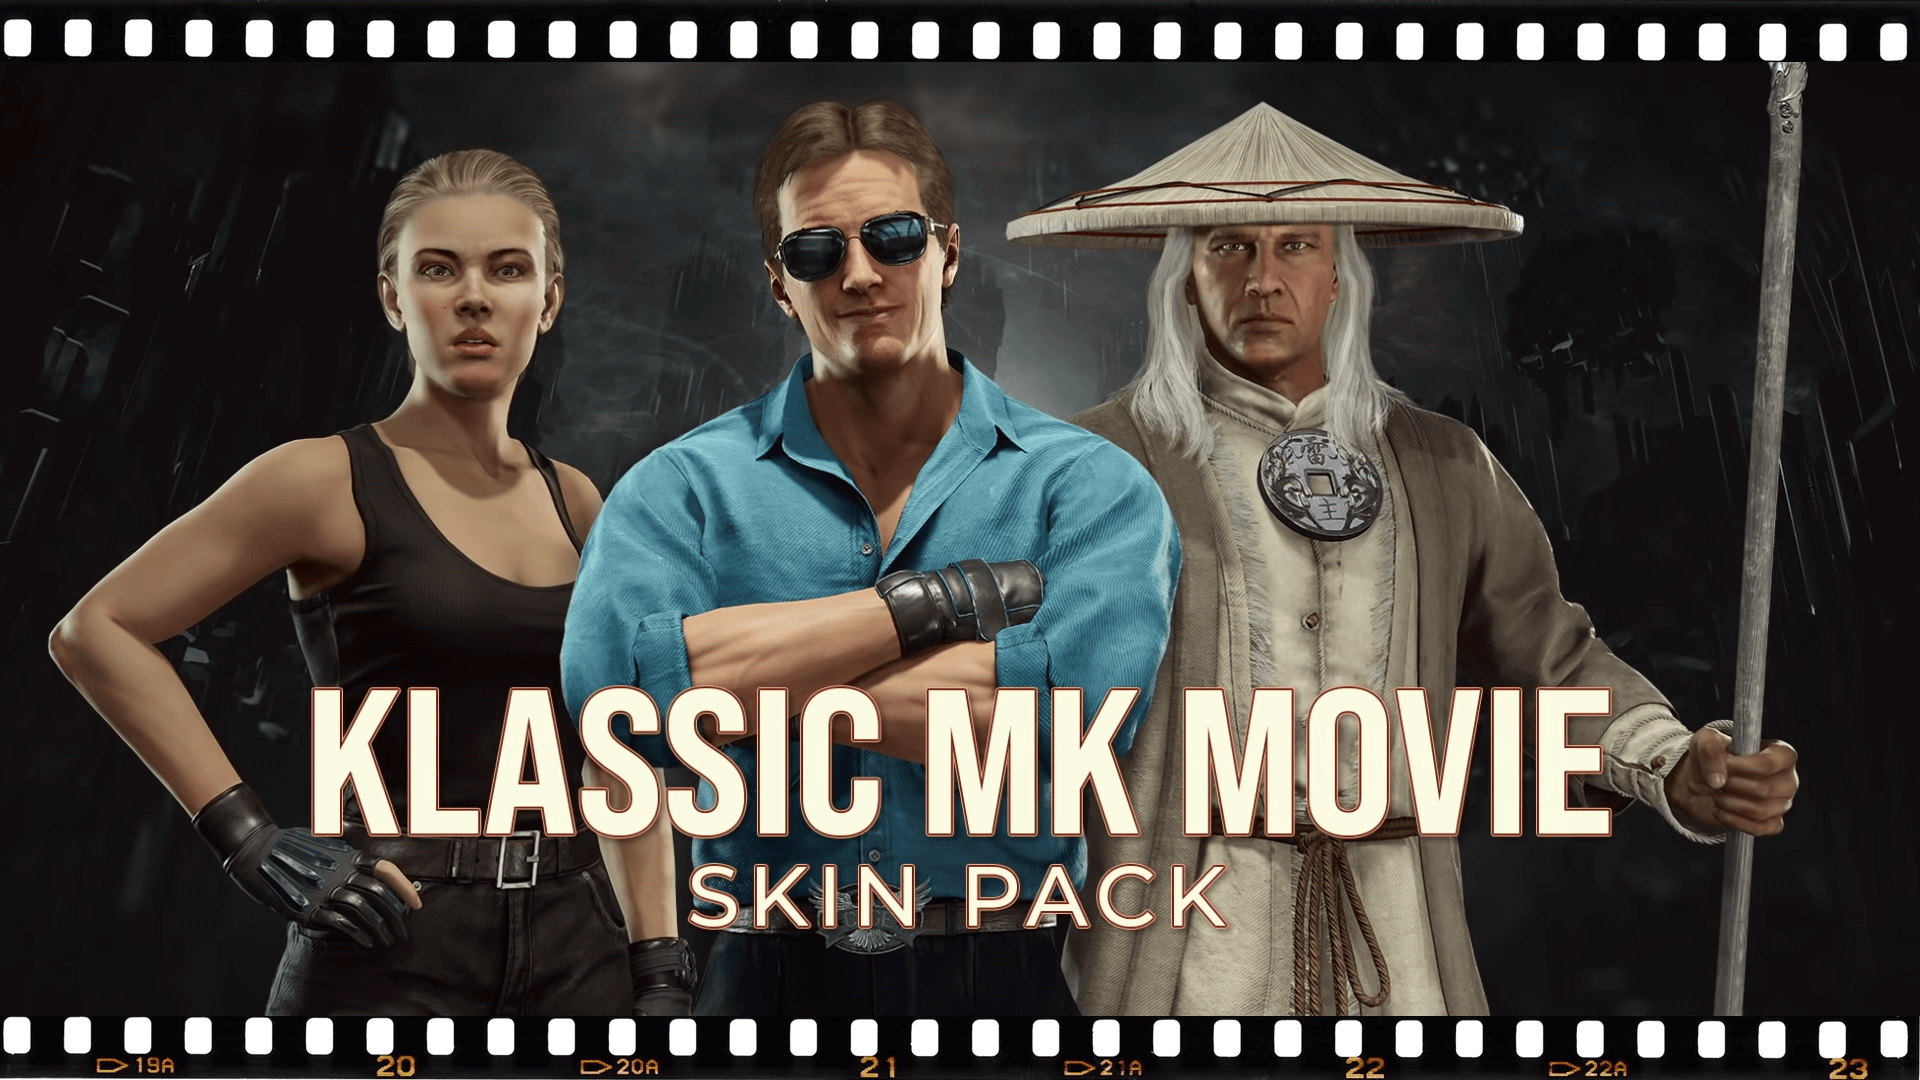 New Klassic Skins coming to MK11 Movie Sonya, Cage, and Raiden!